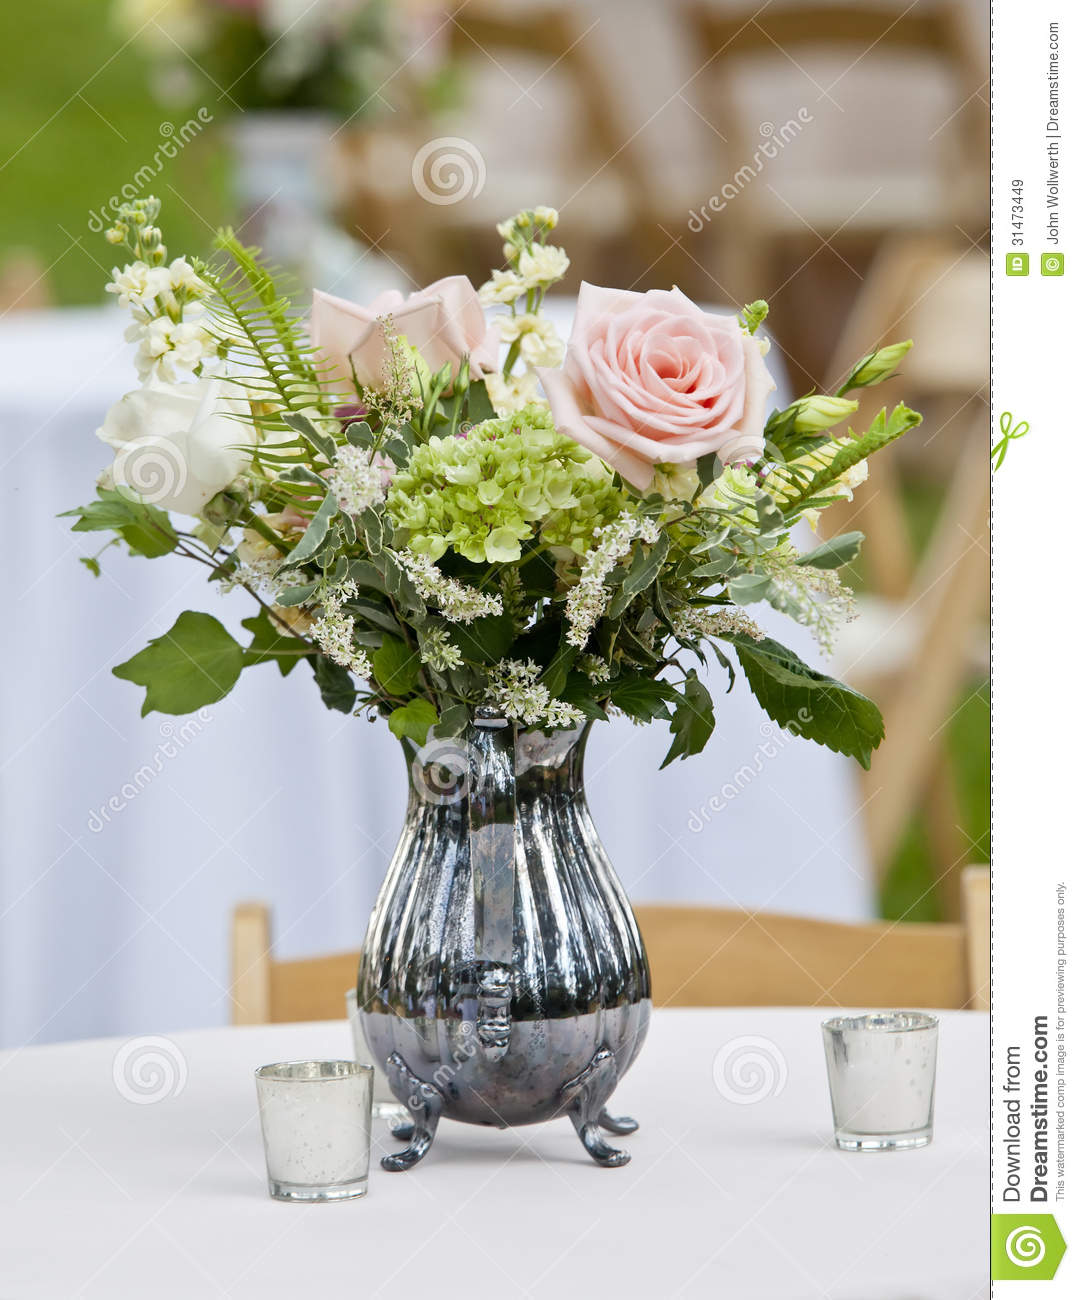 Flower Arrangement In Pitcher Royalty Free Stock Images